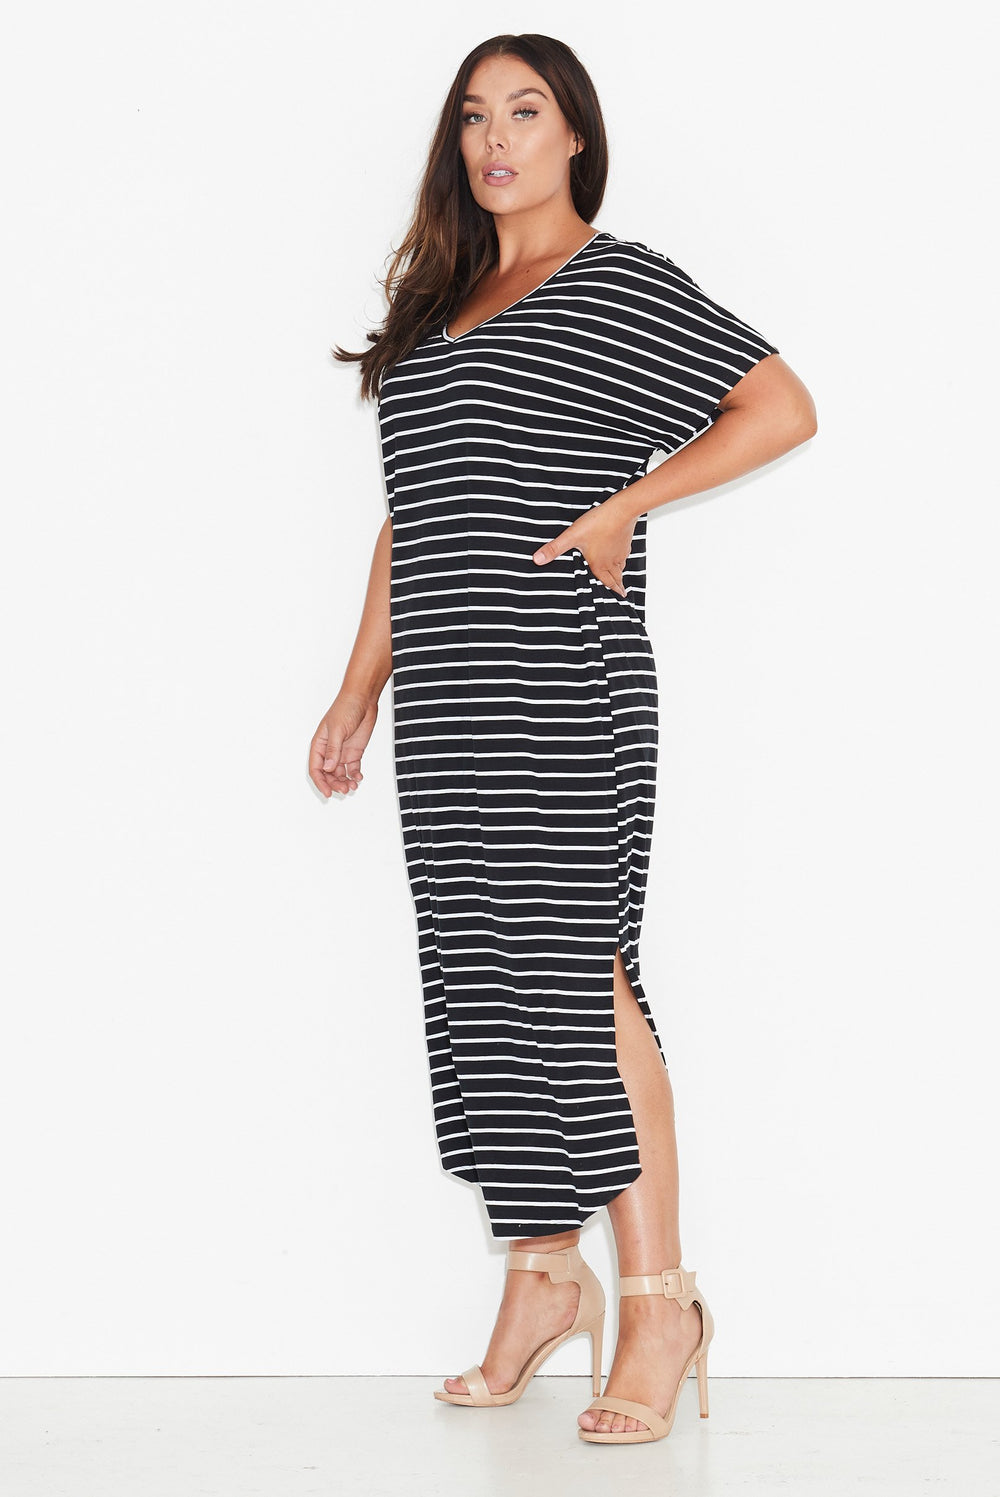 New // 17 SUNDAYS 'Basic Maxi-Dress - Black-Based Stripe' // Sizes 18-20 & 26